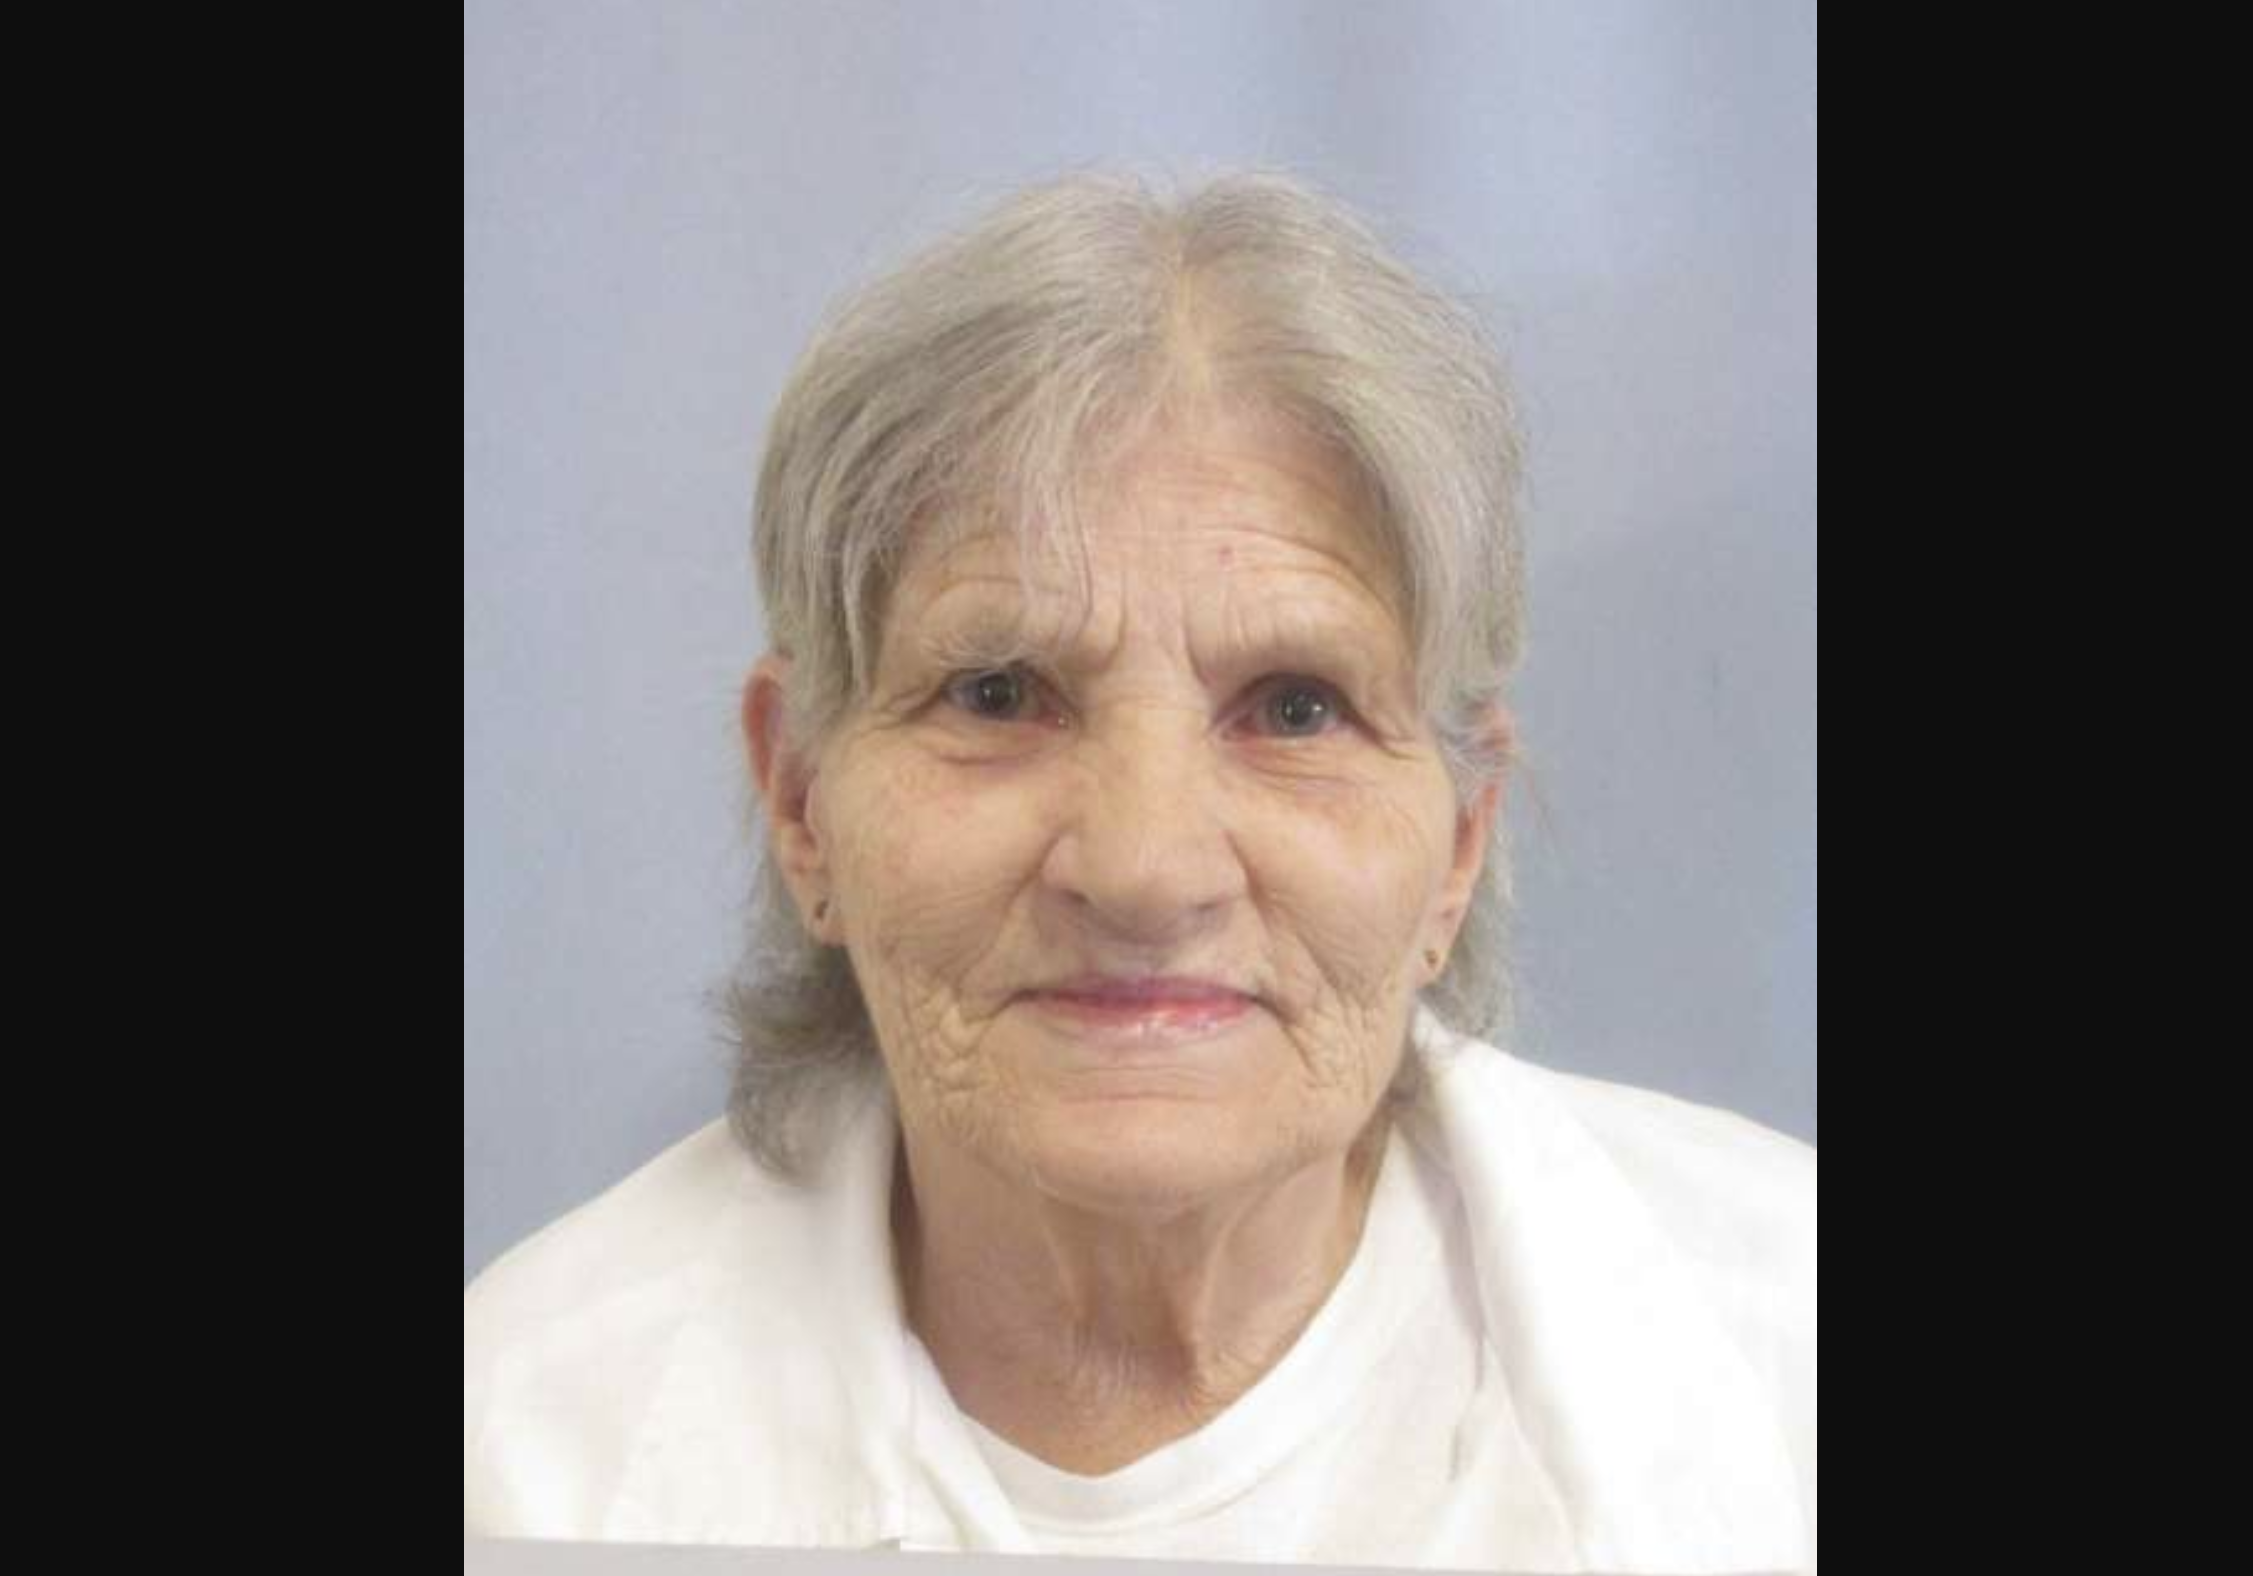 Inmate at Julia Tutwiler Prison for Women dies after testing positive for coronavirus